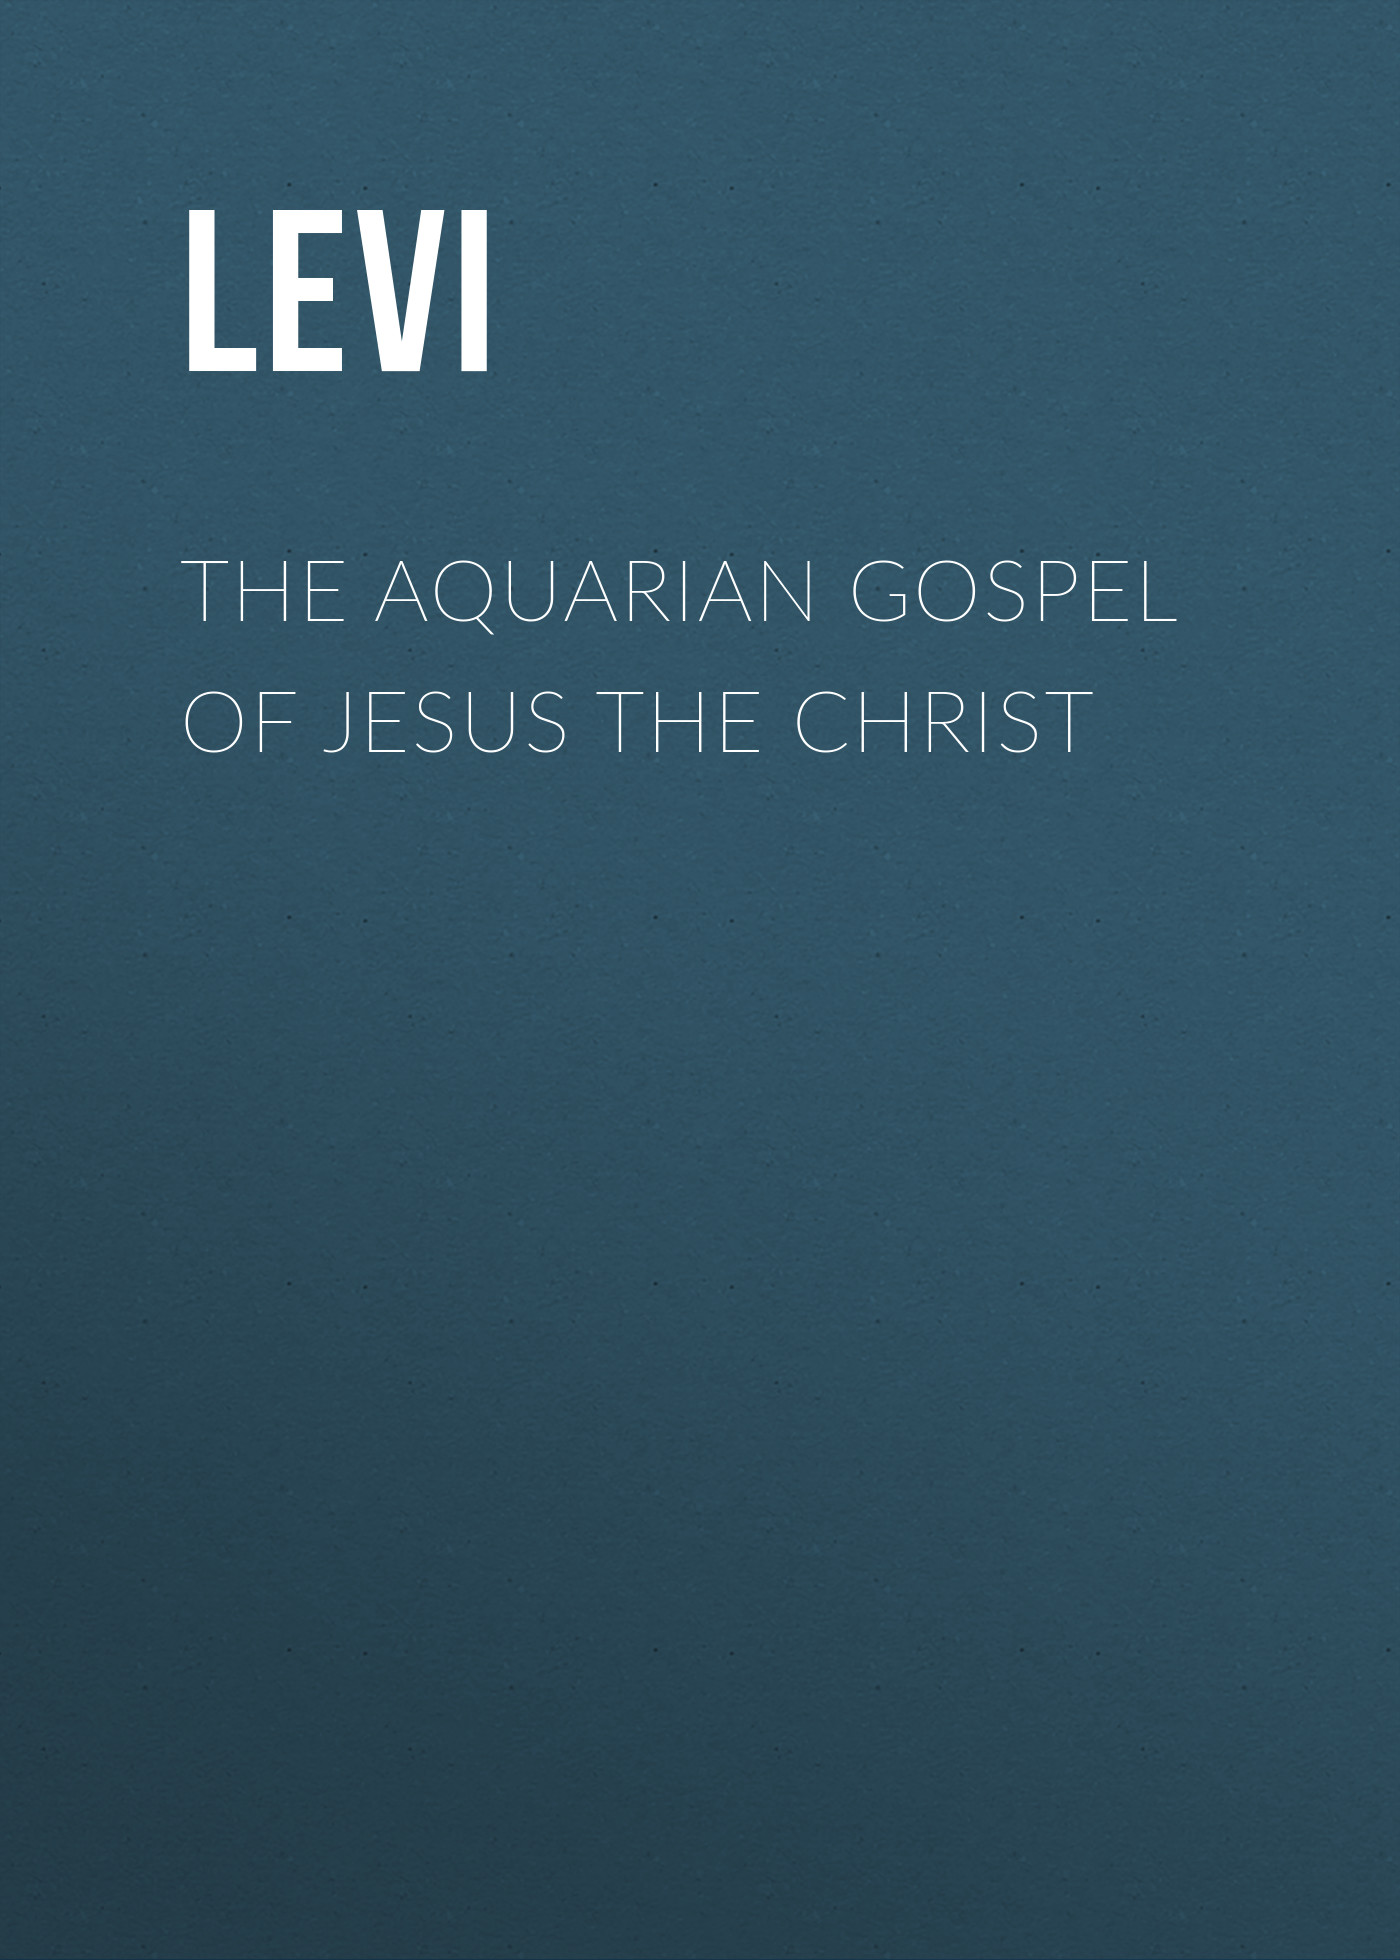 Levi The Aquarian Gospel of Jesus the Christ кпб cl 29